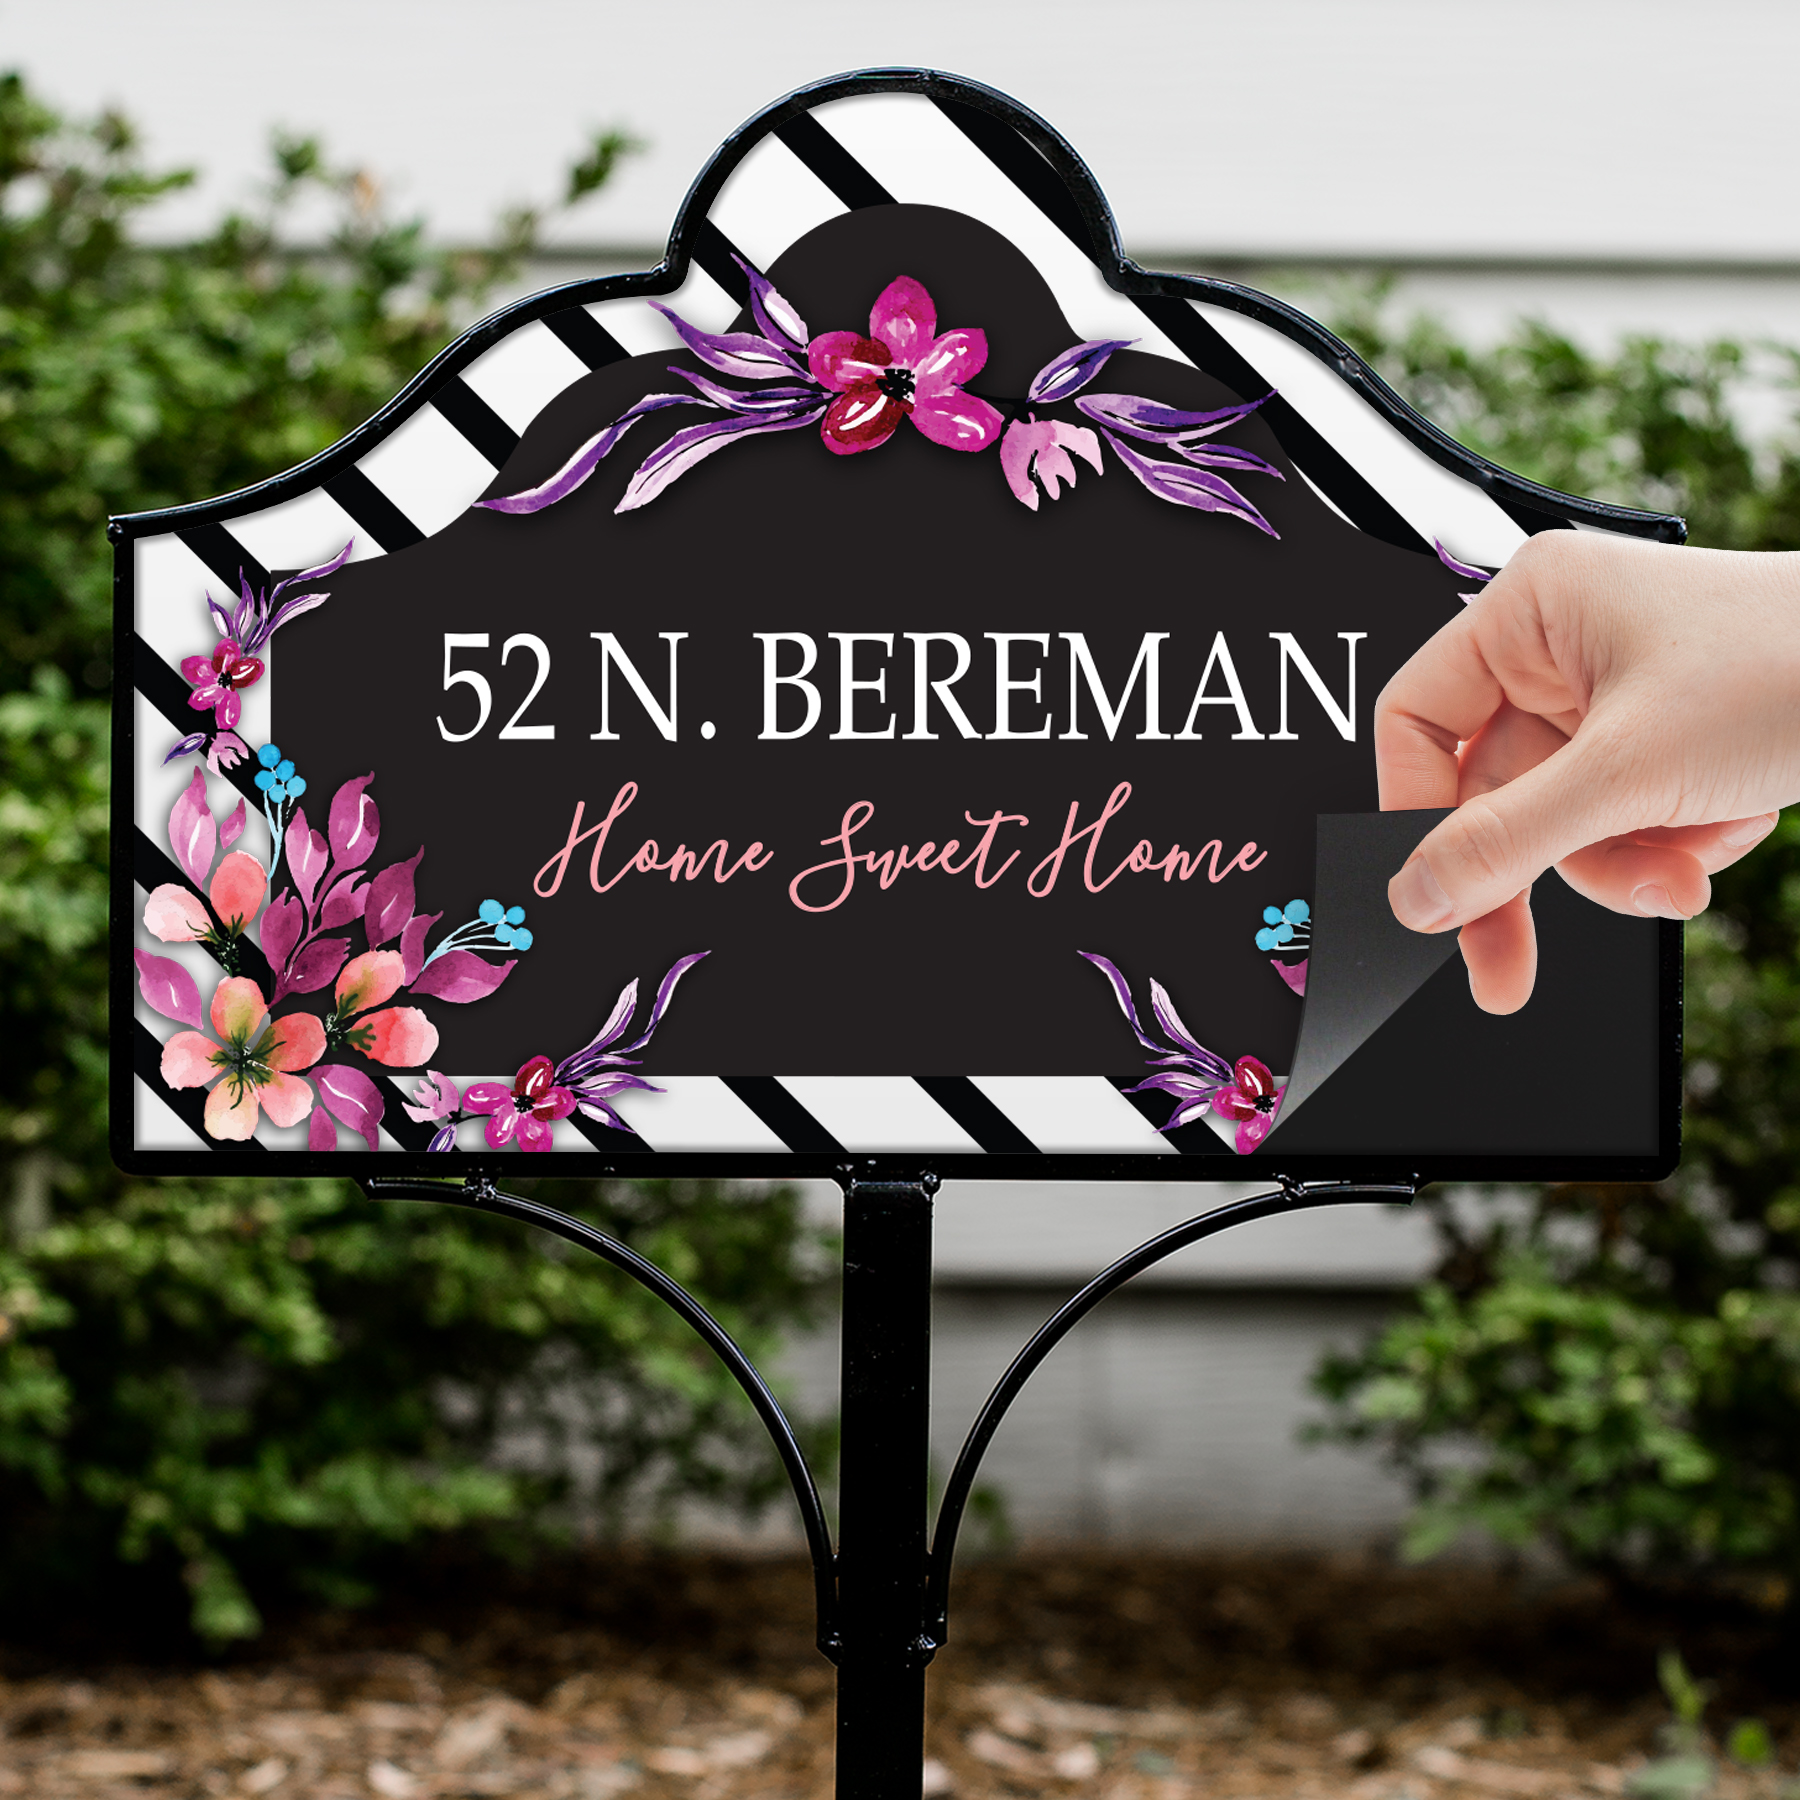 Personalized Vibrant Floral Magnetic Sign Set | Personalized Yard Signs